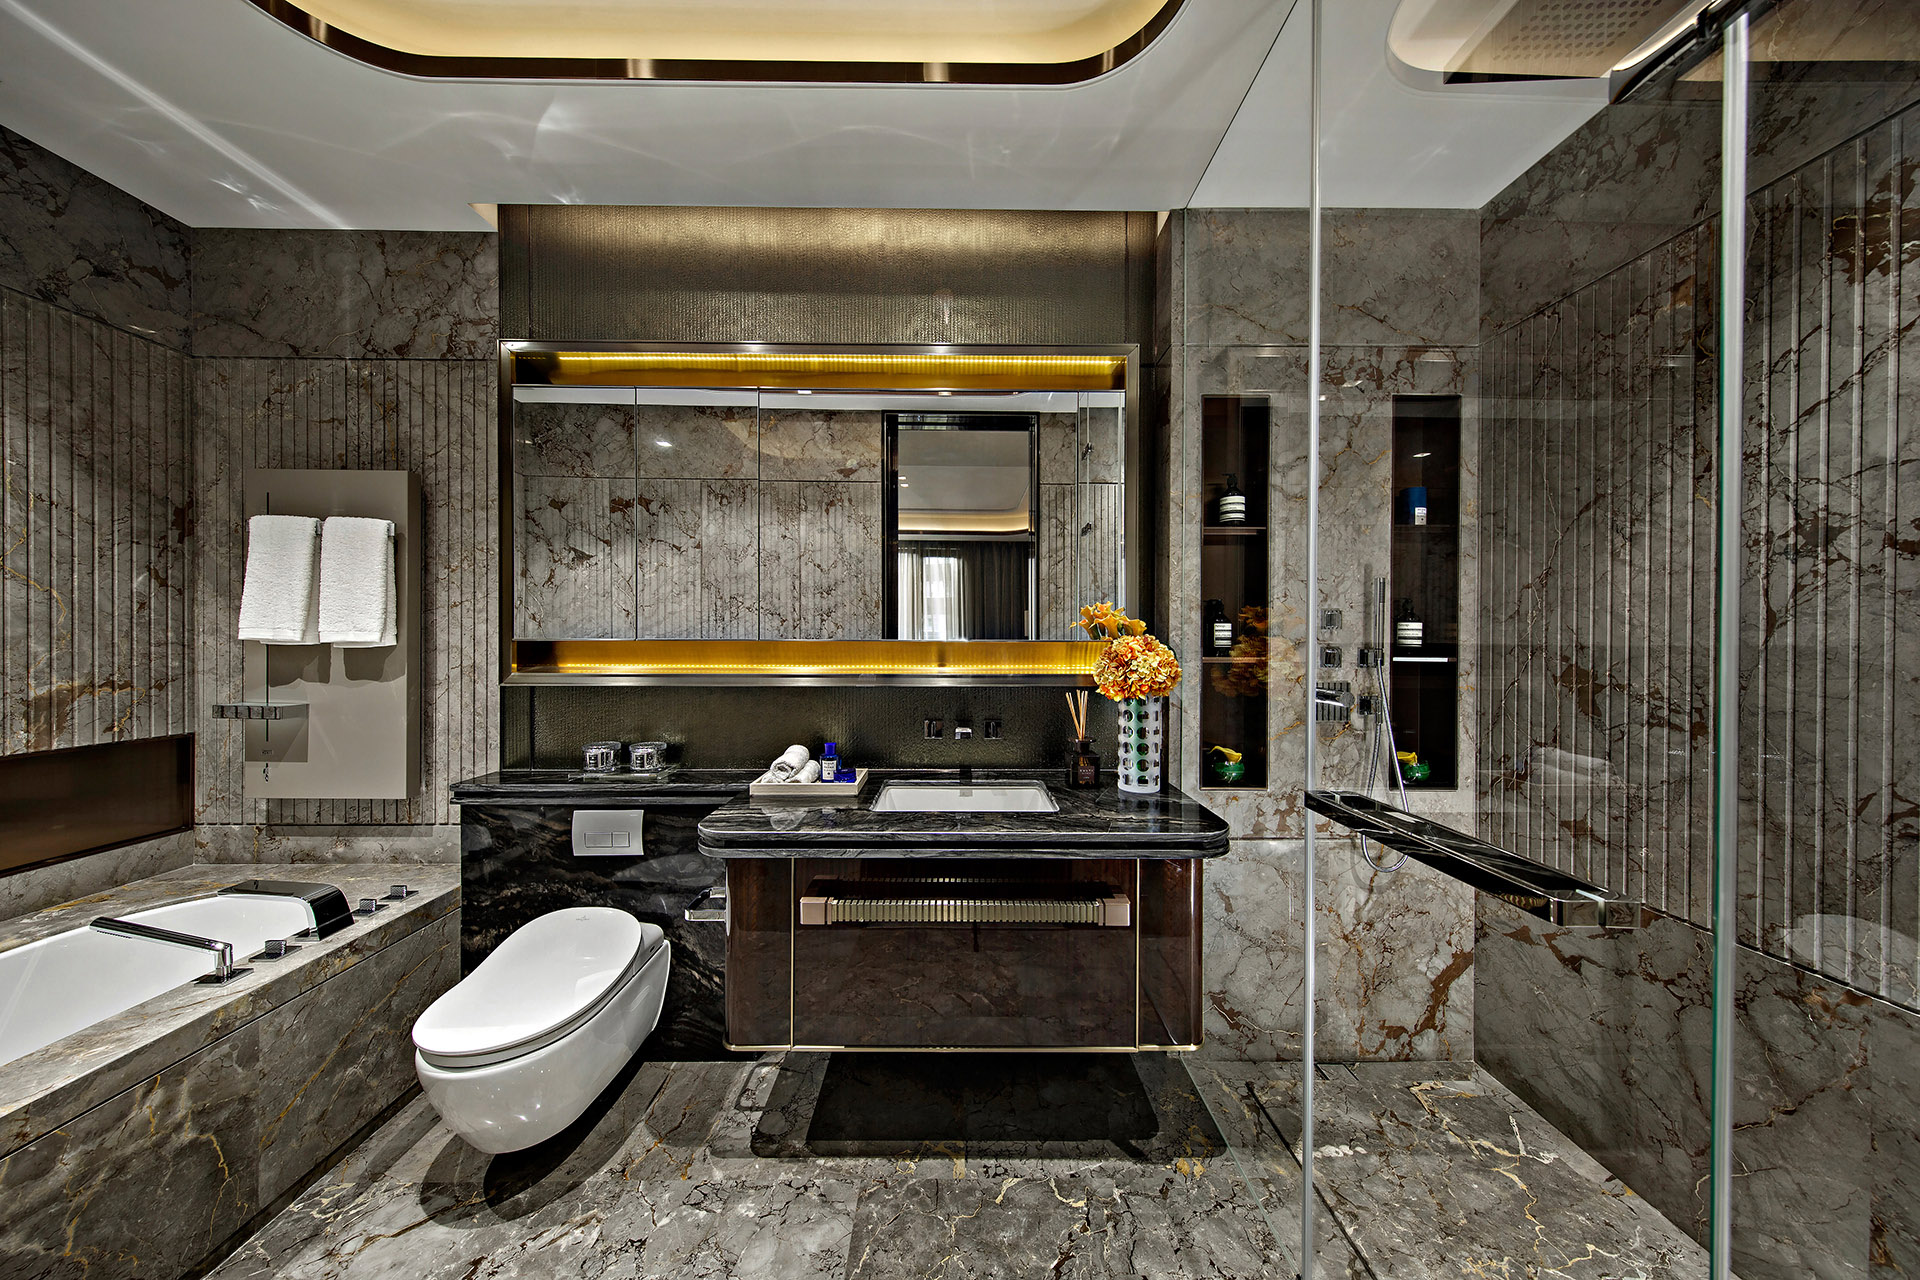 Marble, Bathroom, Bathroom Interiors, Interiors, Luxury Bathroom, China, Shanghai, Design